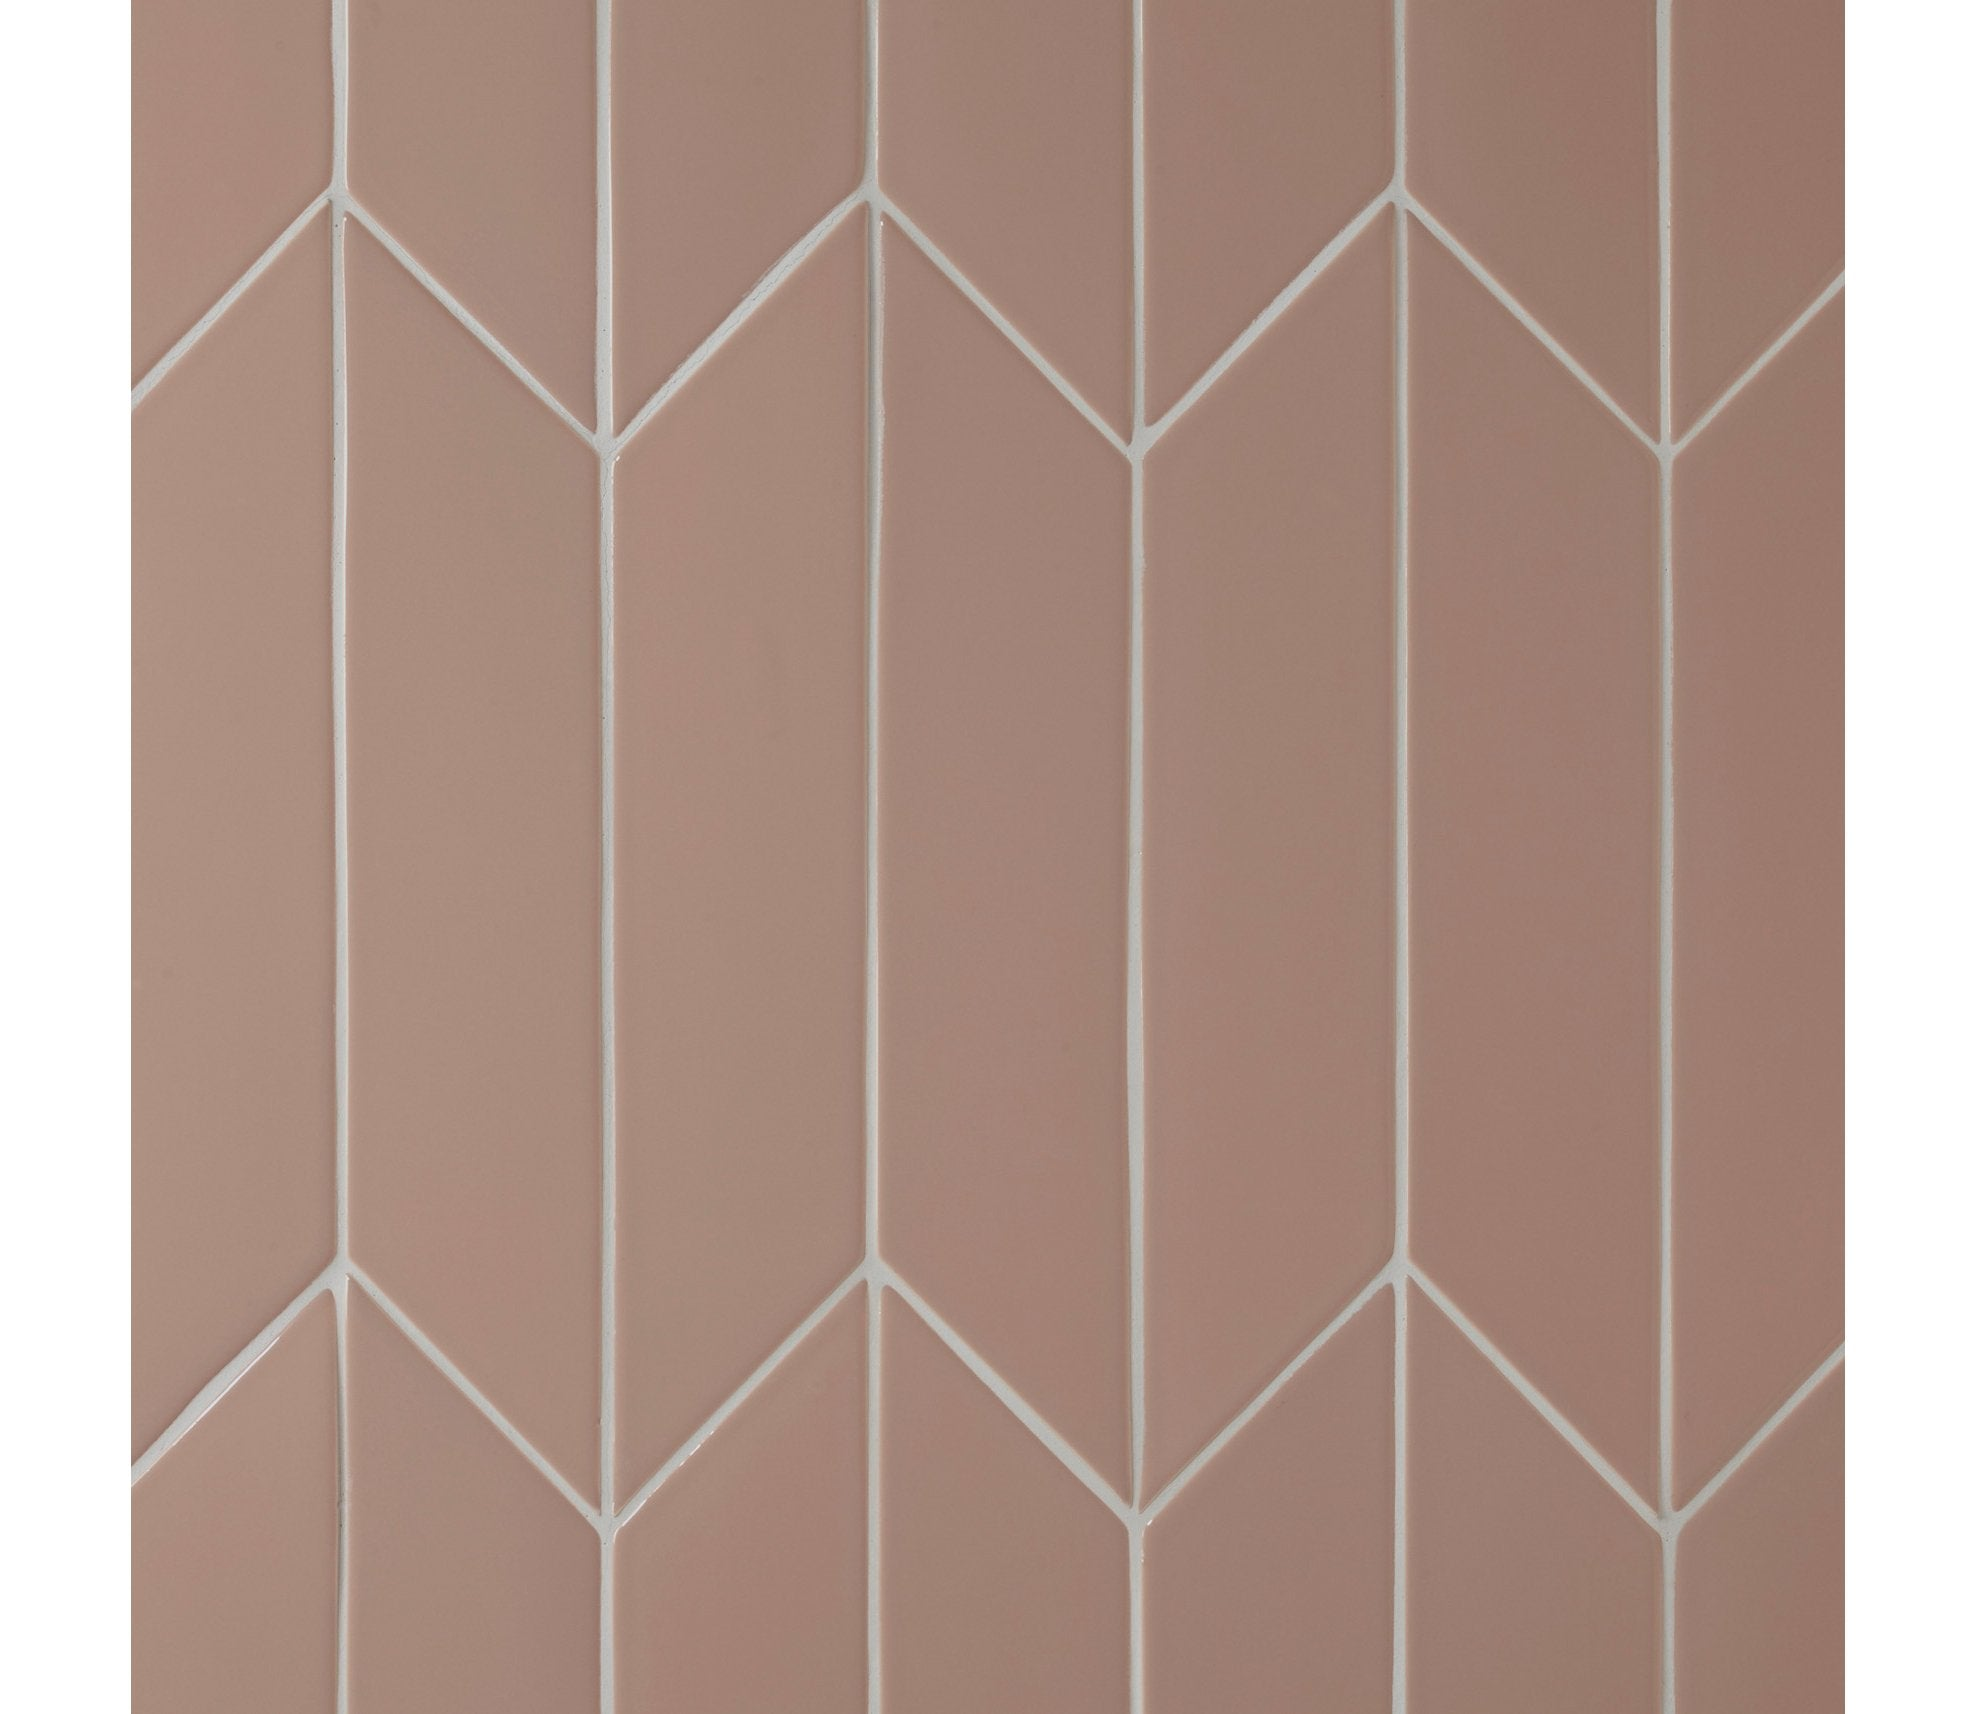 Hanley Traditional Tiles Product Image 17